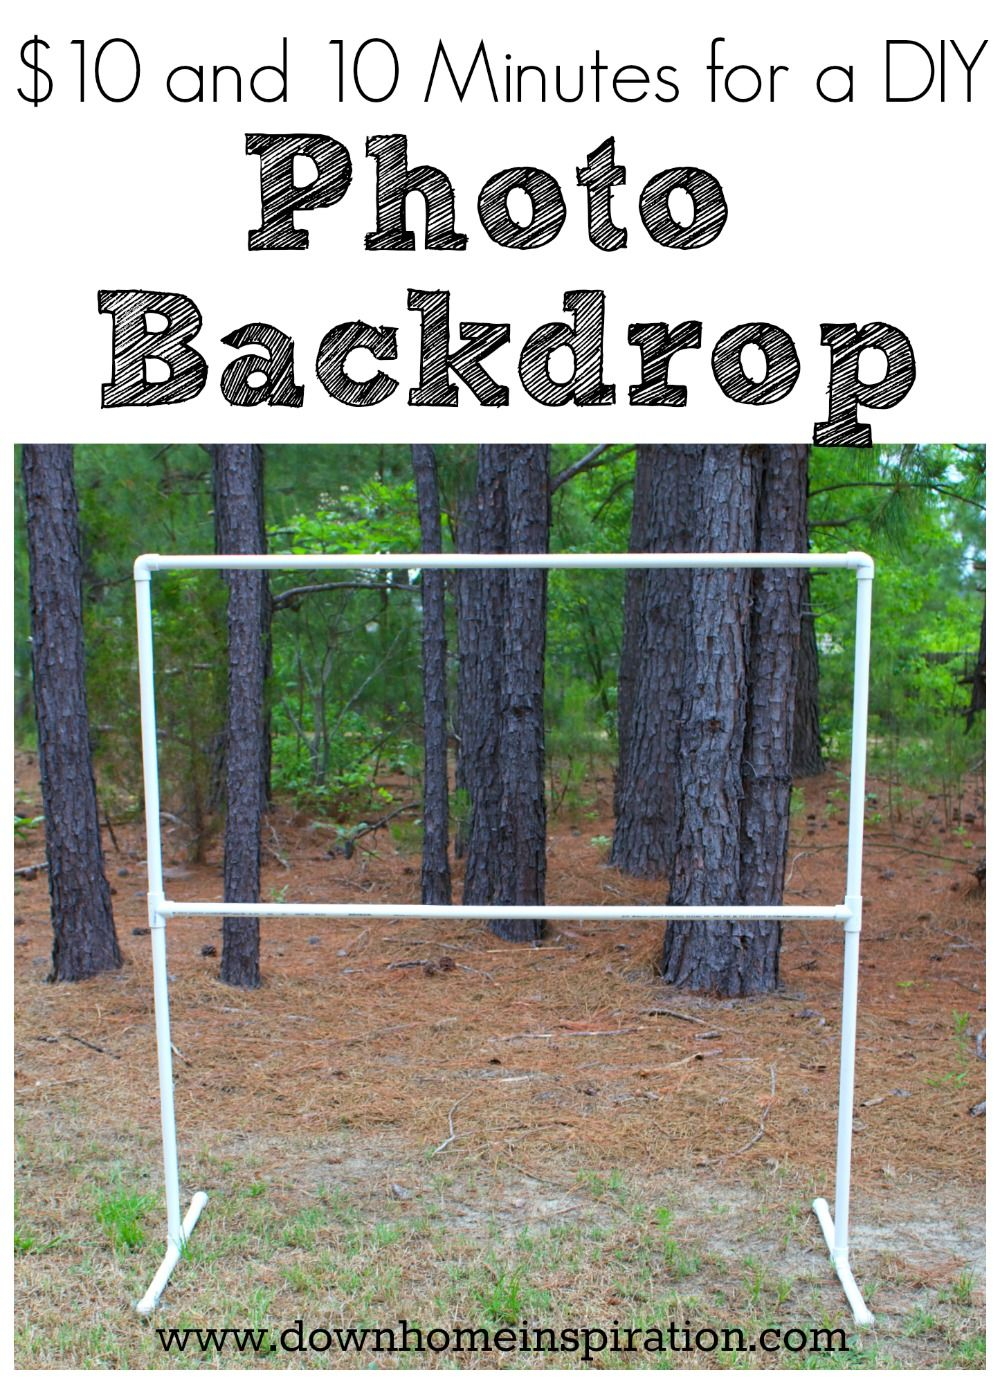 10 and 10 minutes for a diy photo backdrop diy photo backdrop so easy and would be great for last day of school photos 10 and 10 minutes for a diy photo backdrop down home inspiration solutioingenieria Choice Image